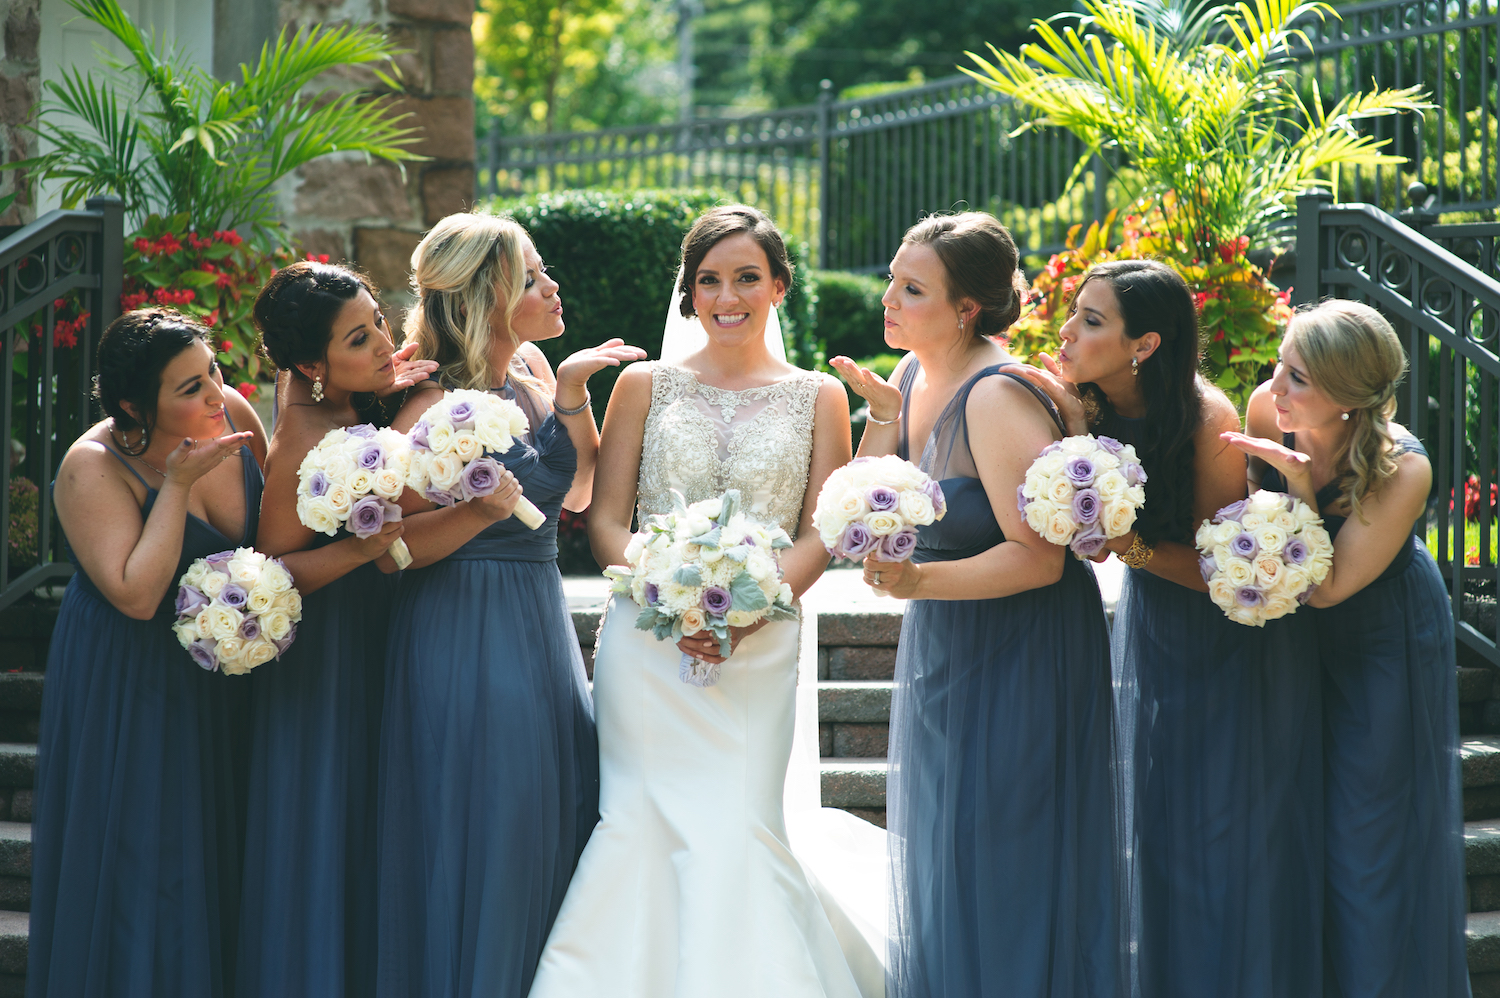 clarissa-smiling-bridesmaids-blowing-kisses-wedding-photography-nj